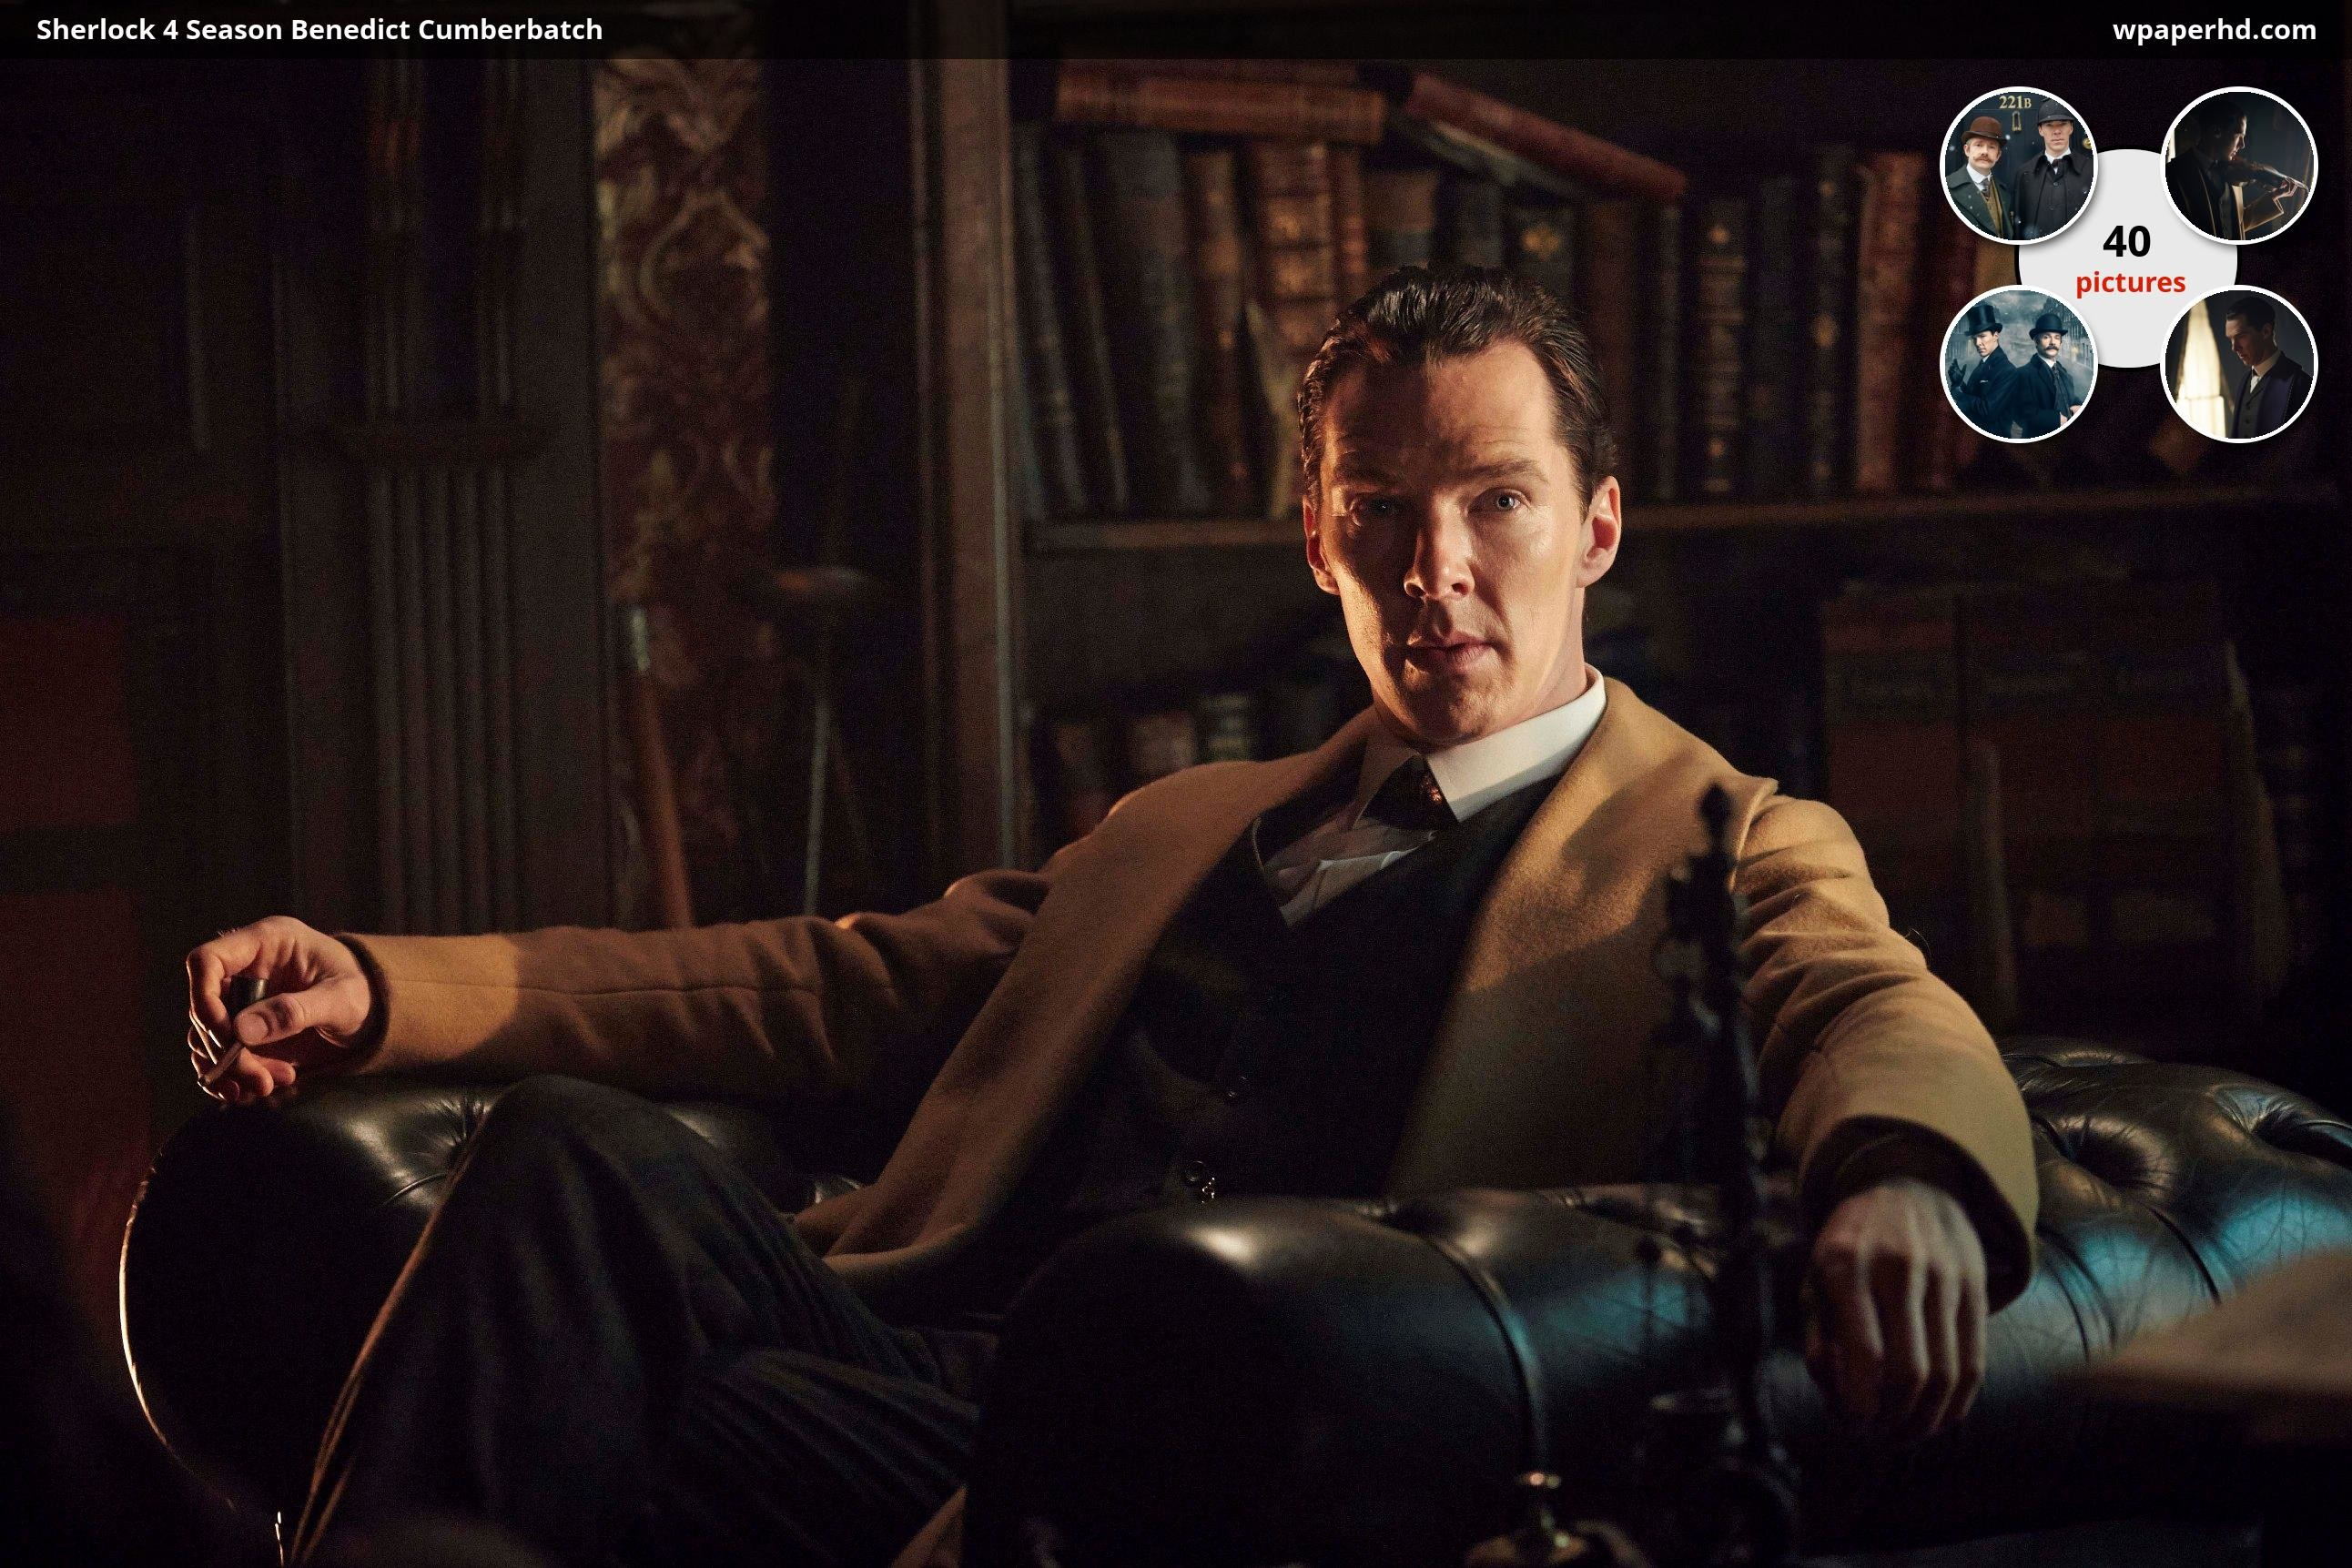 Benedict Cumberbatch Sherlock Wallpaper (82+ images)